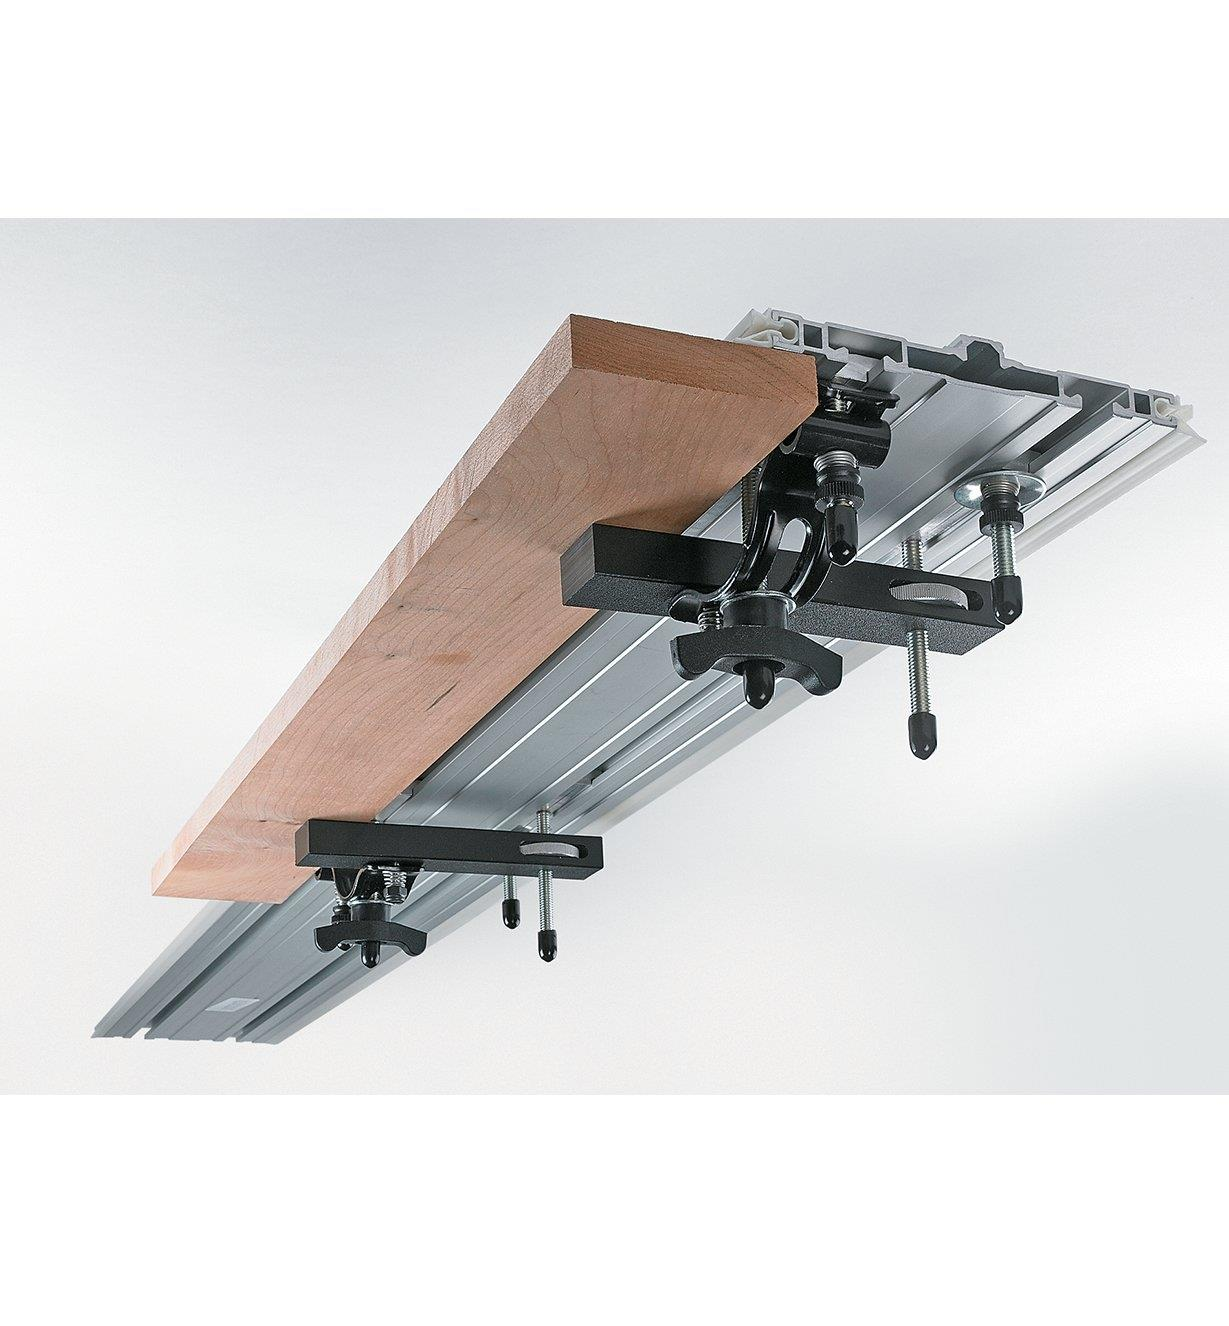 86N5230 - Elevated Clamps, pr.